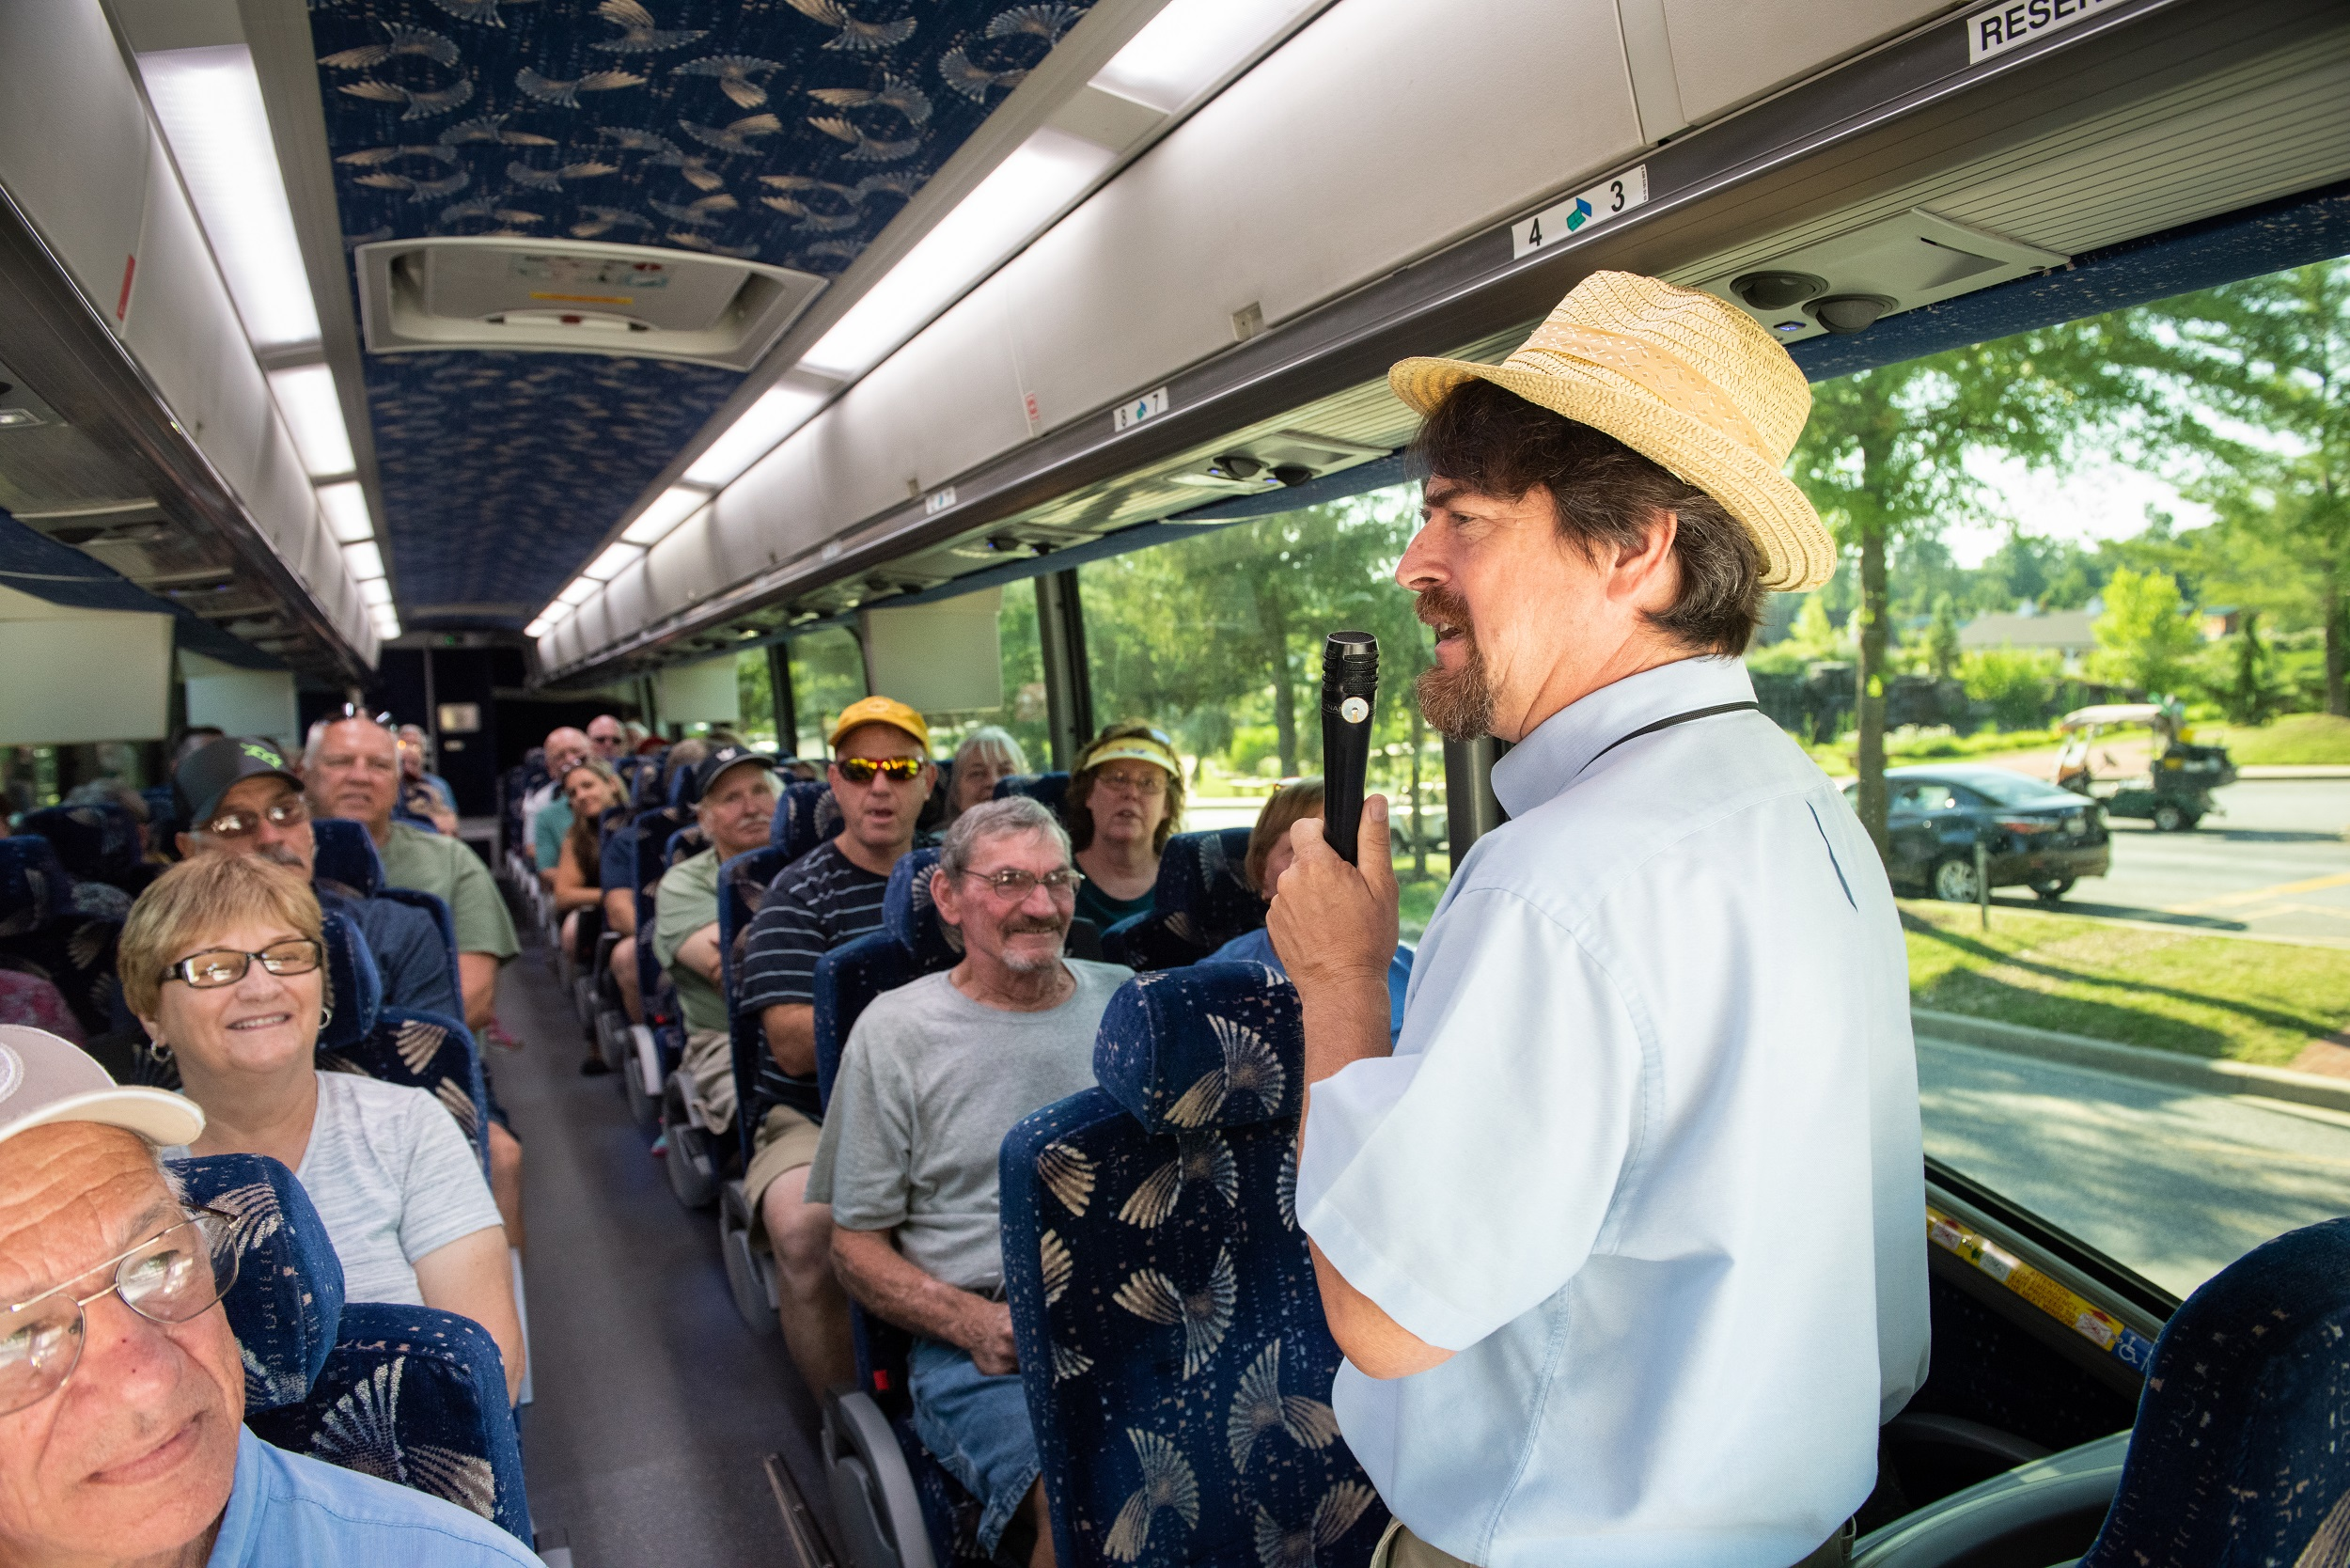 We run fully guided tours from the campground into downtown Washington, DC.